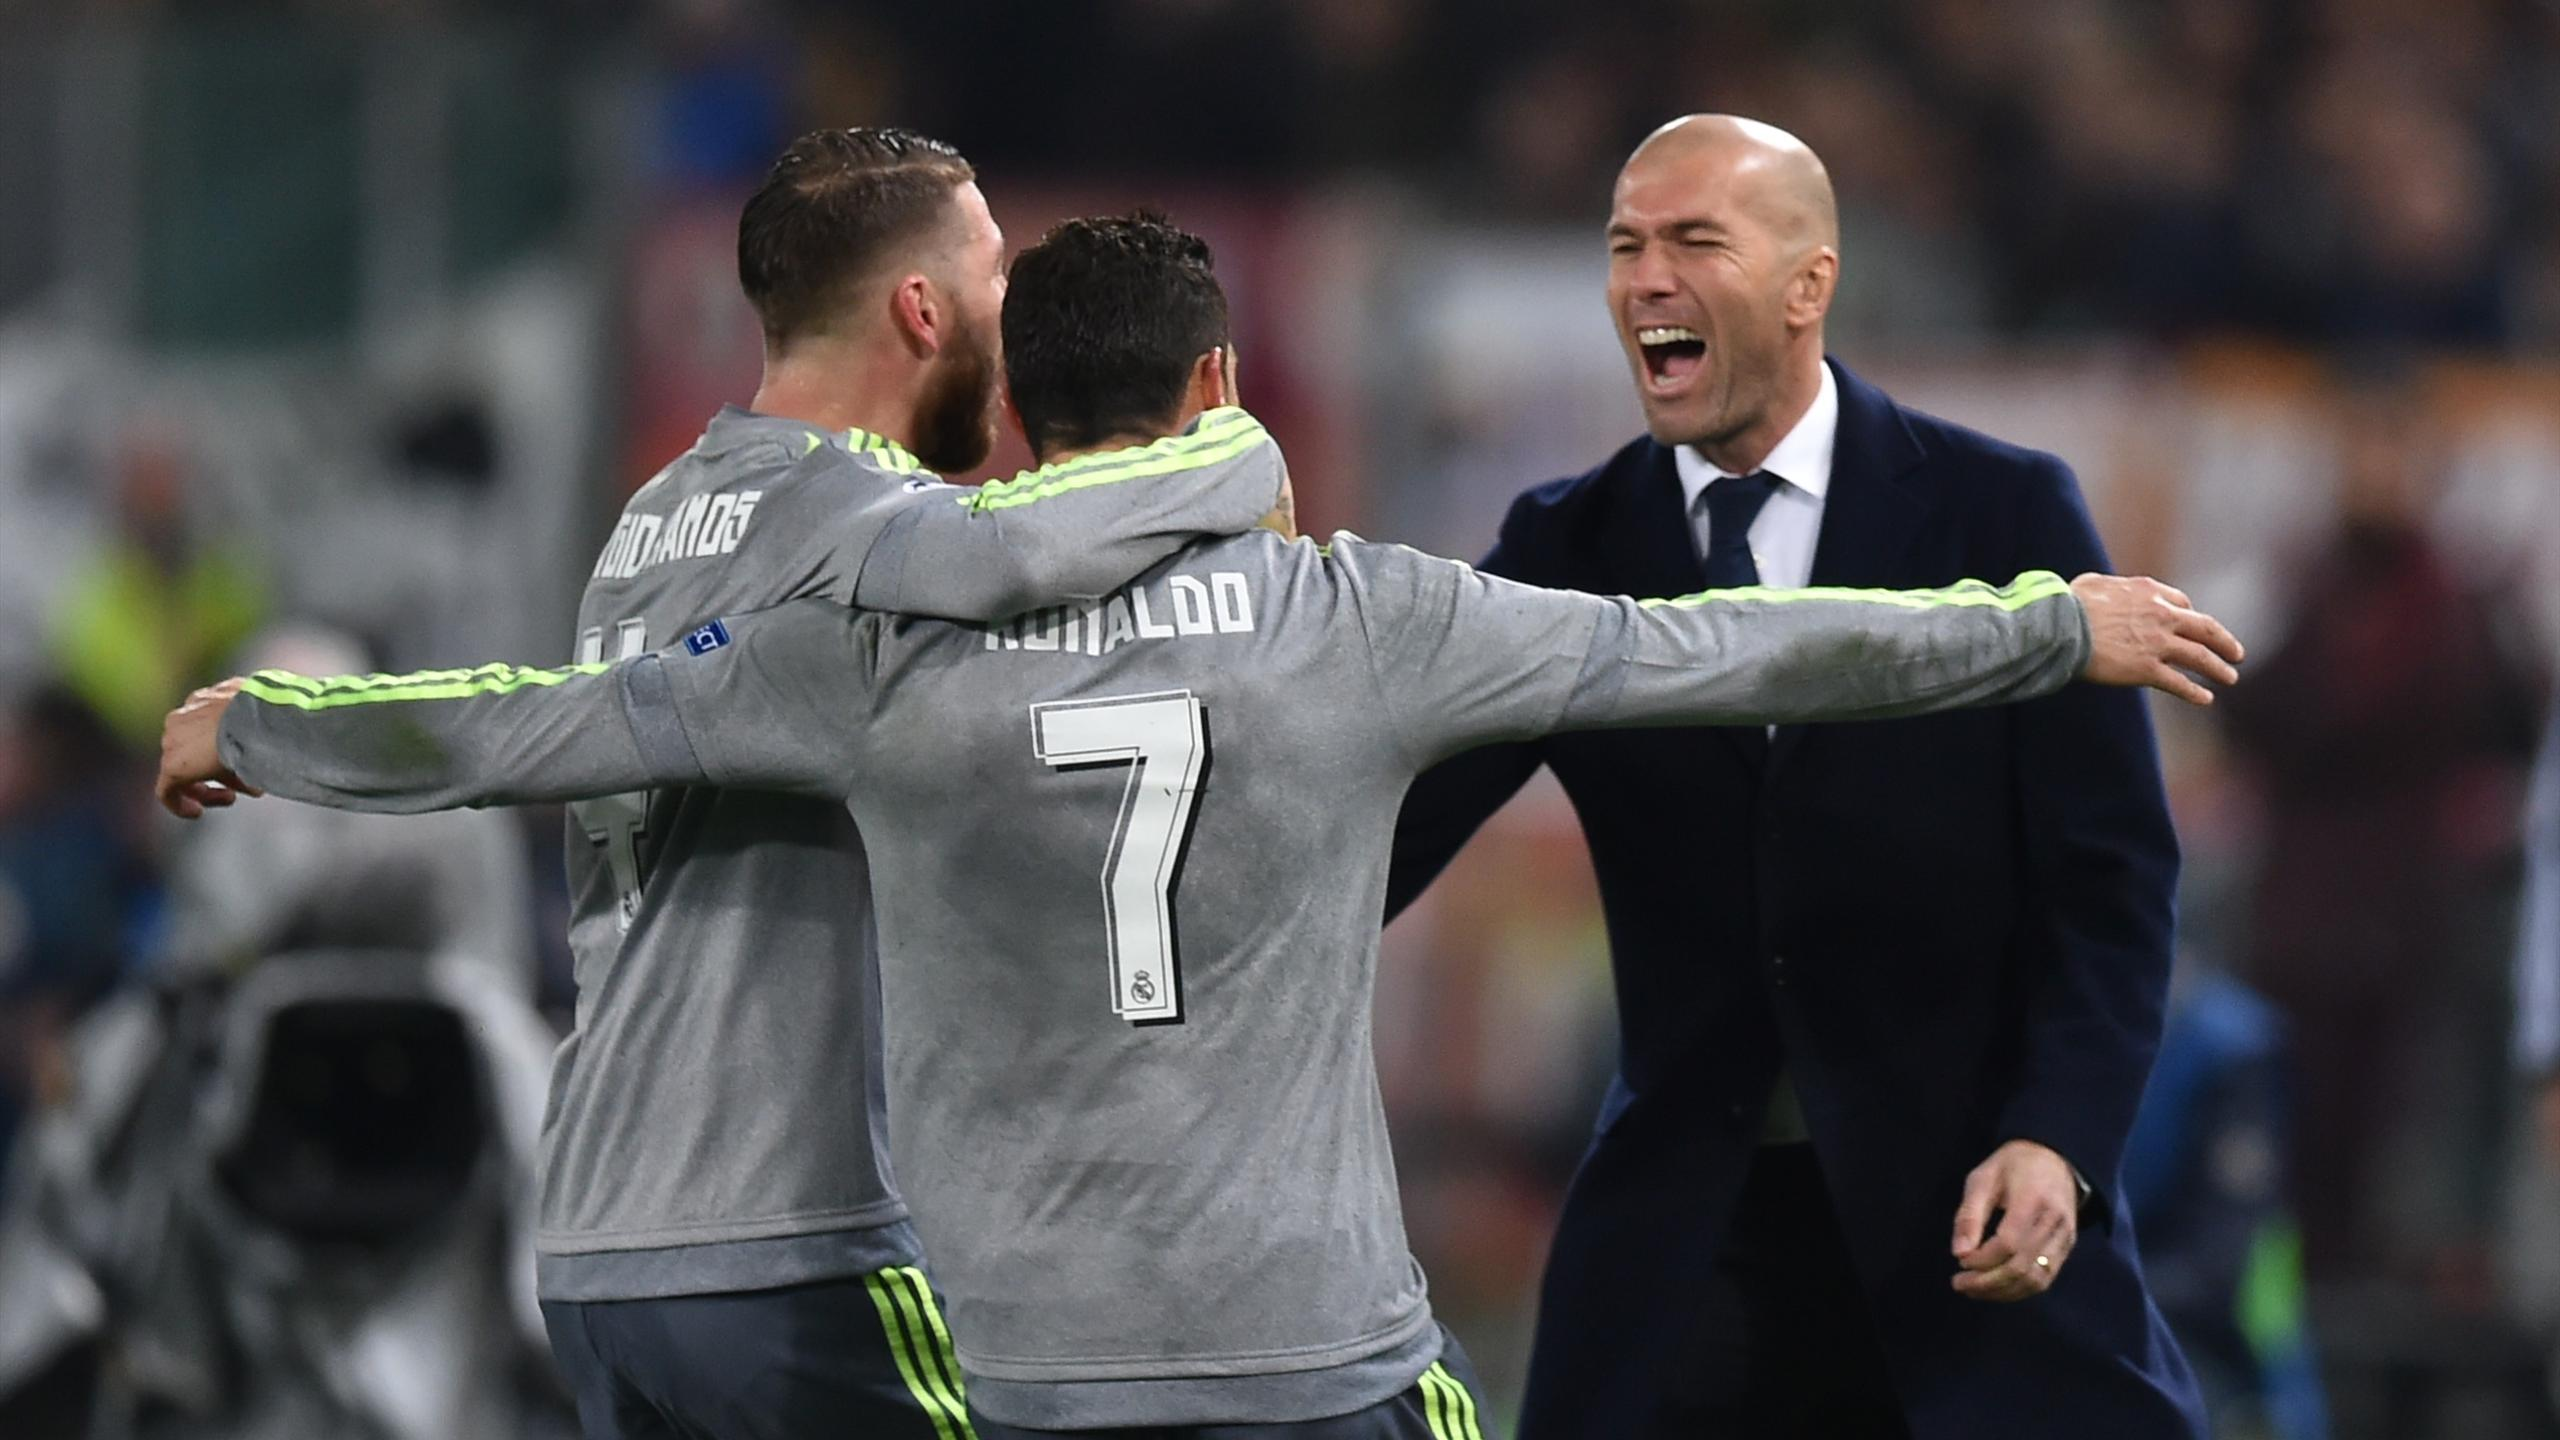 Real Madrid's Portuguese forward Cristiano Ronaldo (C) celebrates with Real Madrid's defender Sergio Ramos and Real Madrid's French coach Zinedine Zidane after scoring during the UEFA Champions League football match AS Roma vs Real Madrid on Frebruary 17,